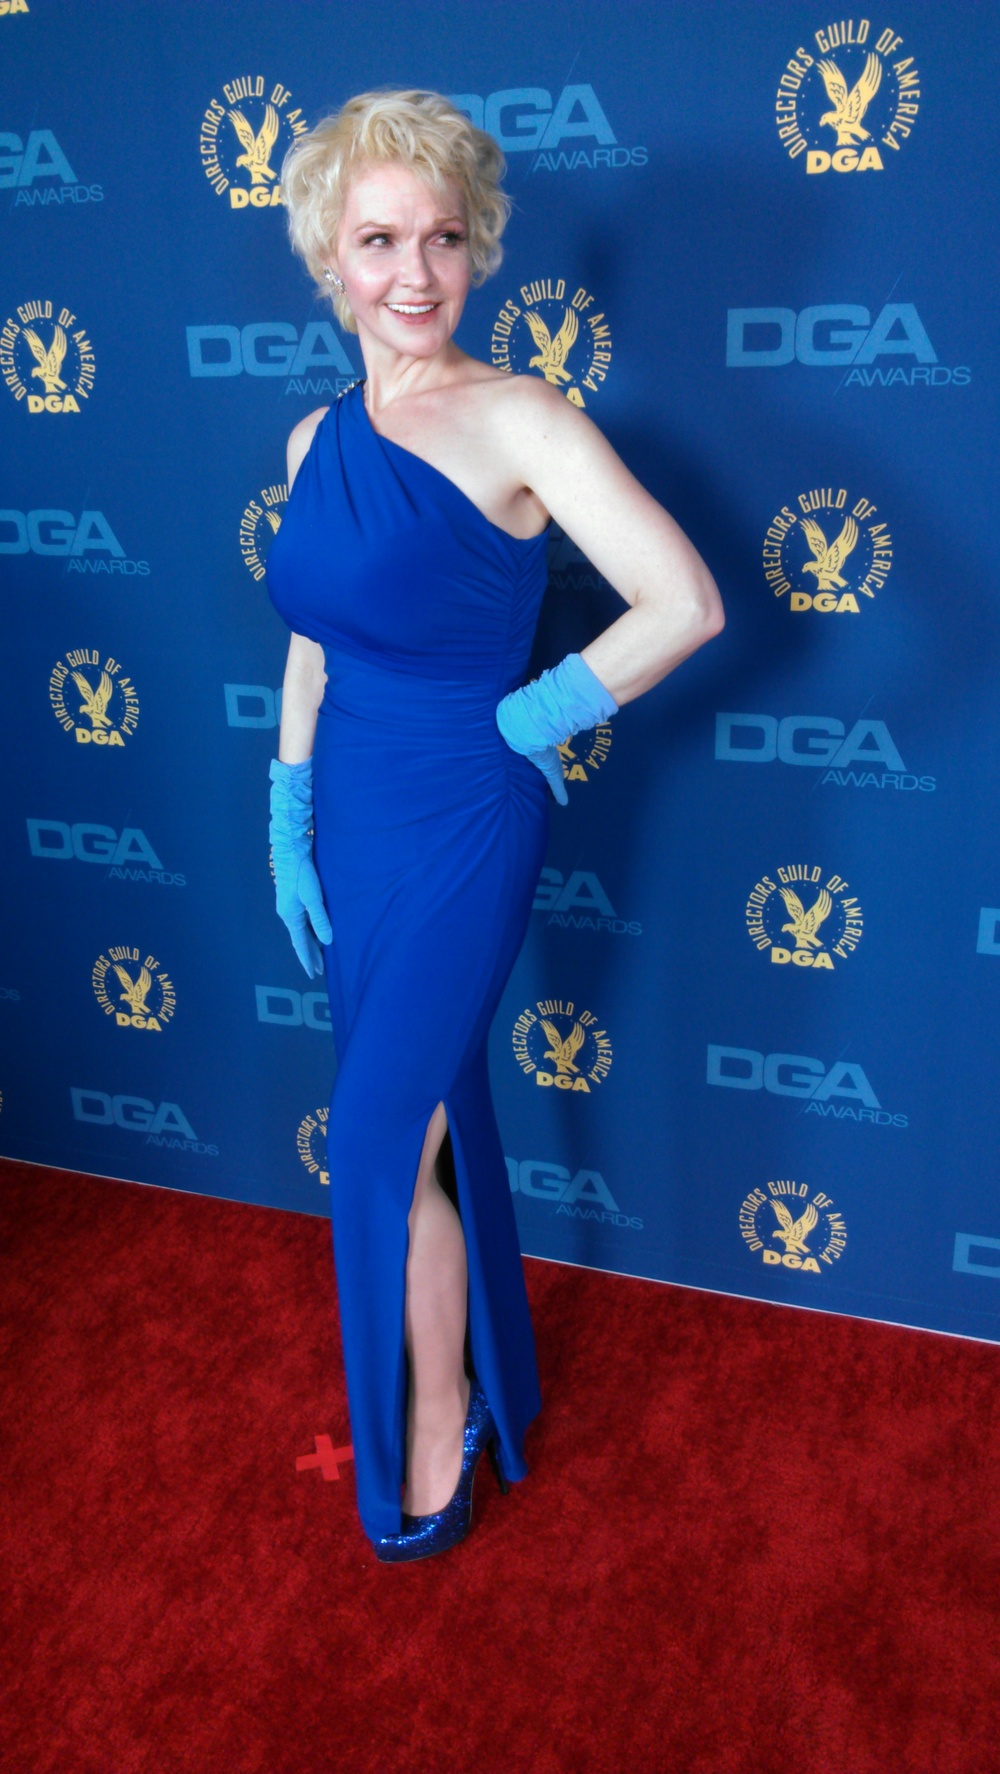 Dee at DGA Awards 2013.jpg